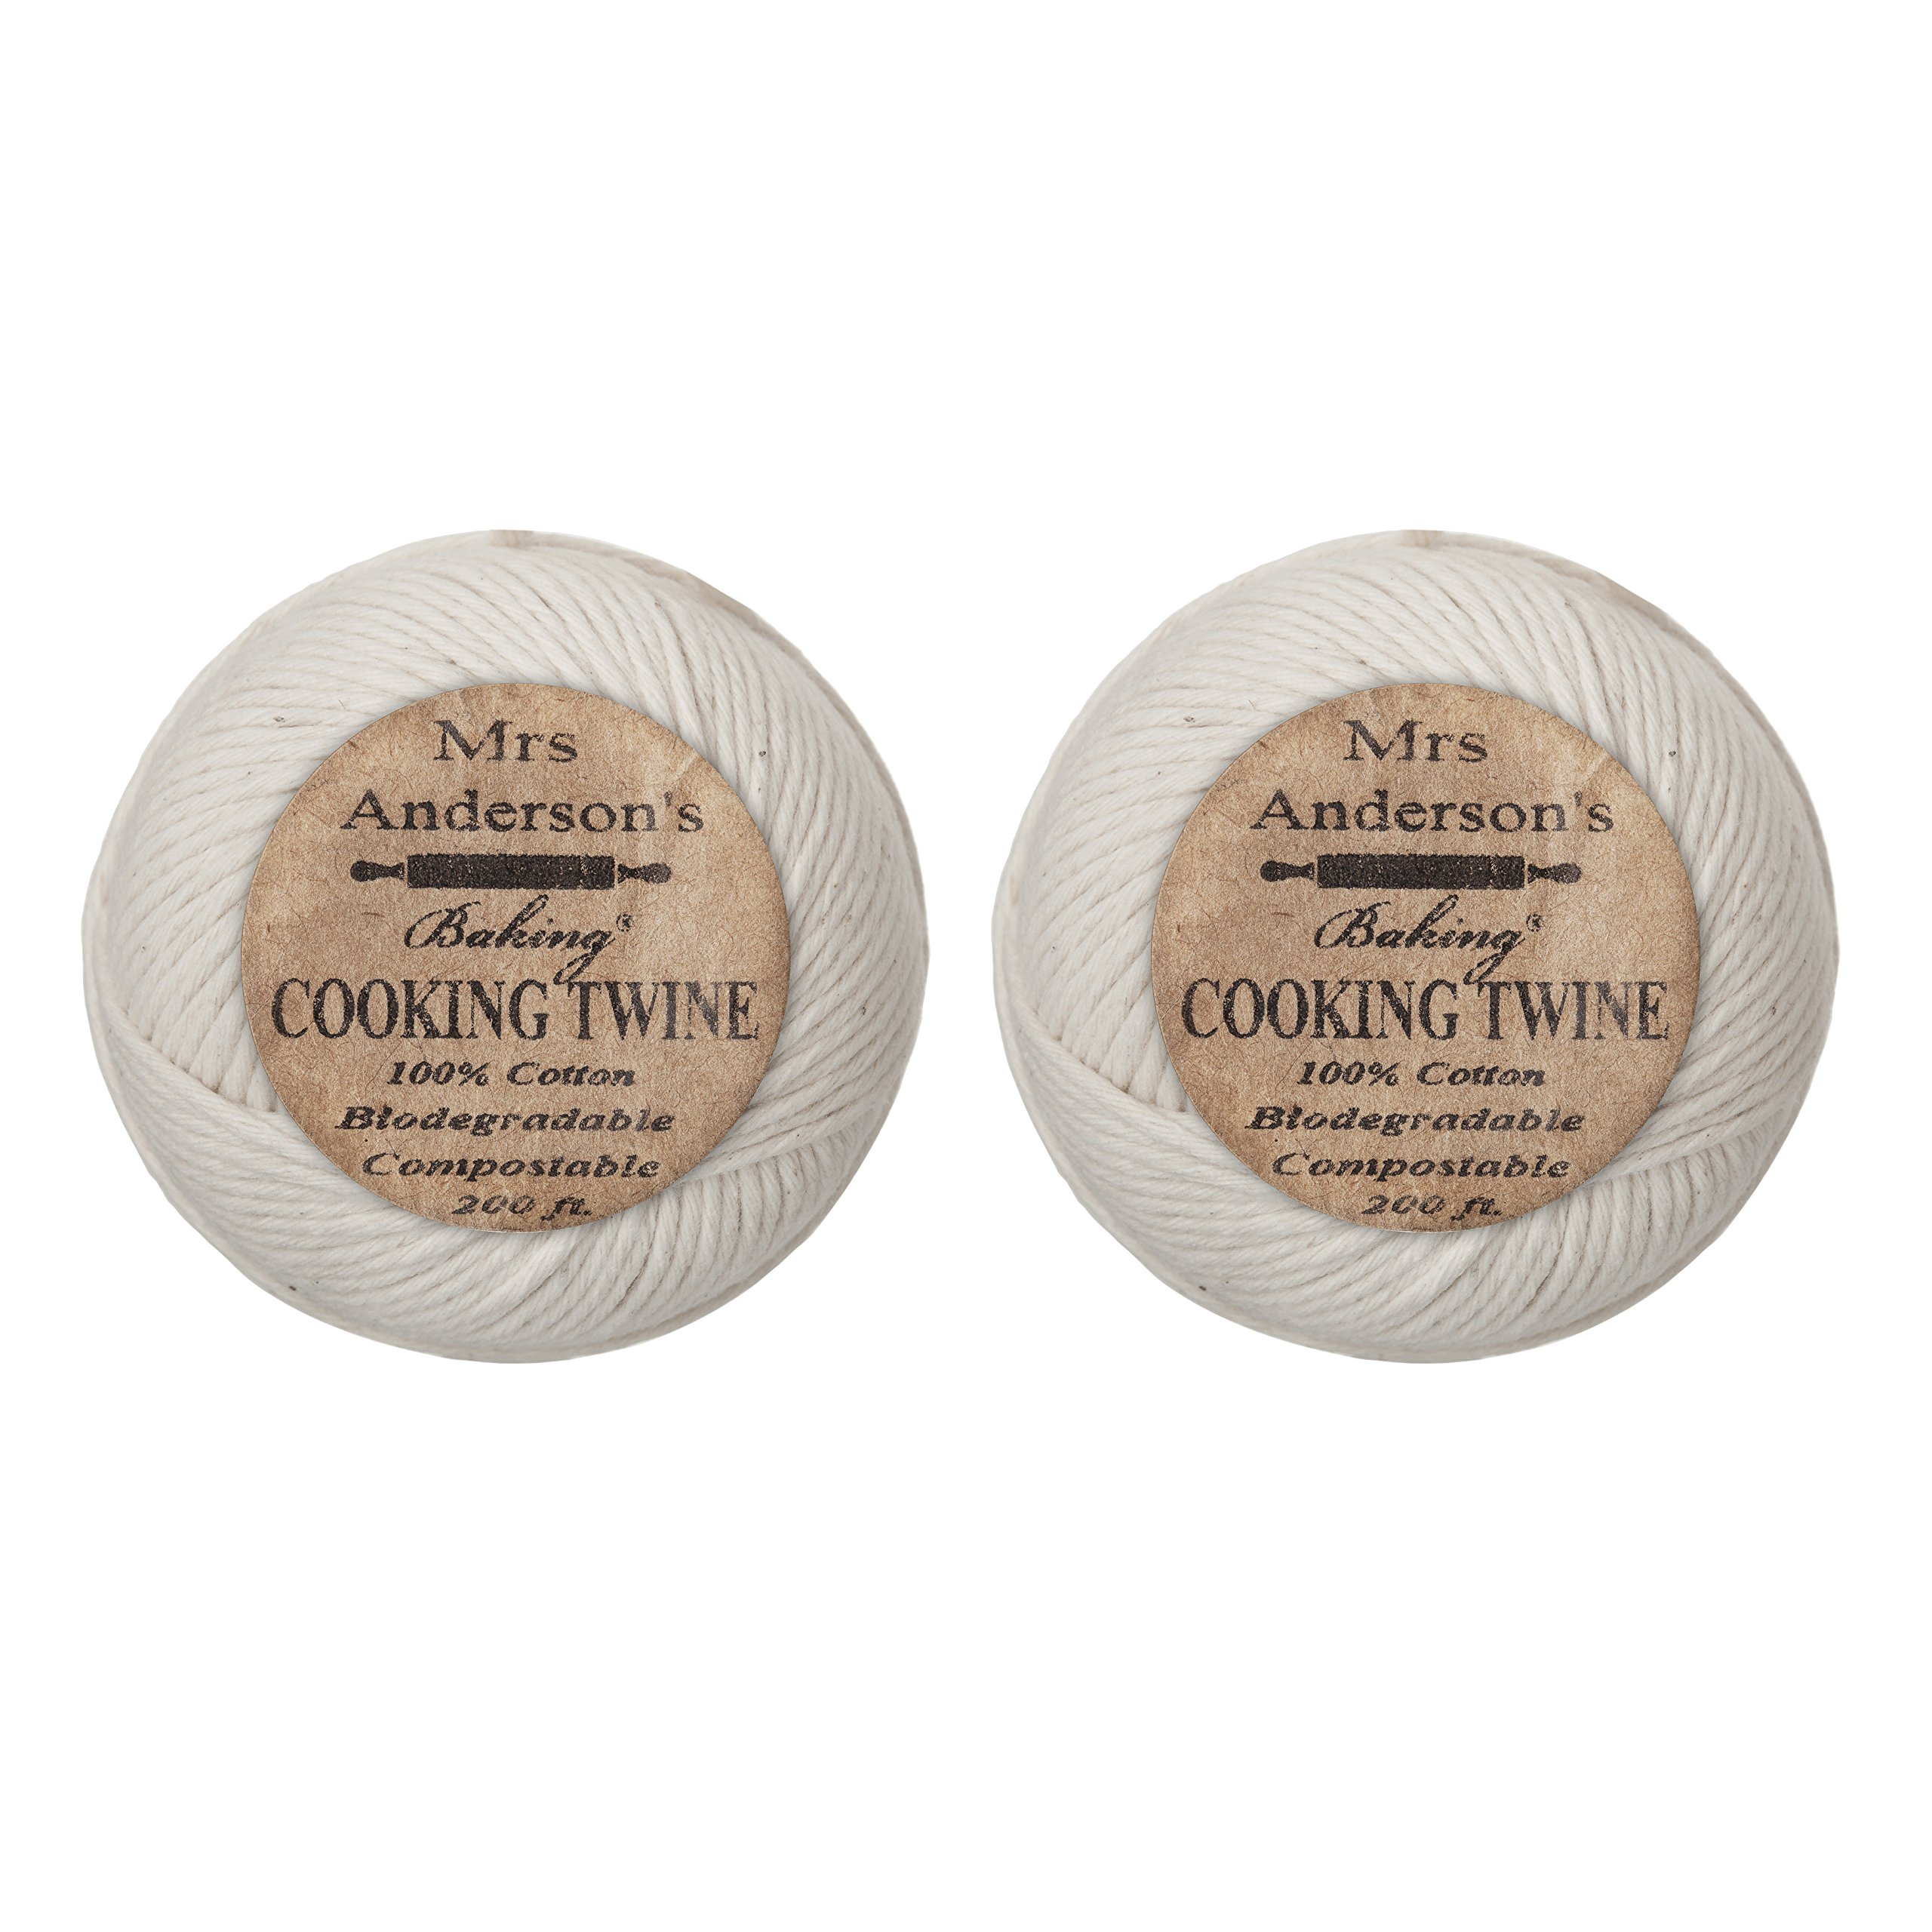 Mrs. Anderson's Baking Cooking Twine, Made in America, All-Natural Cotton, 200-Feet, Set of 2 by Mrs. Anderson's Baking